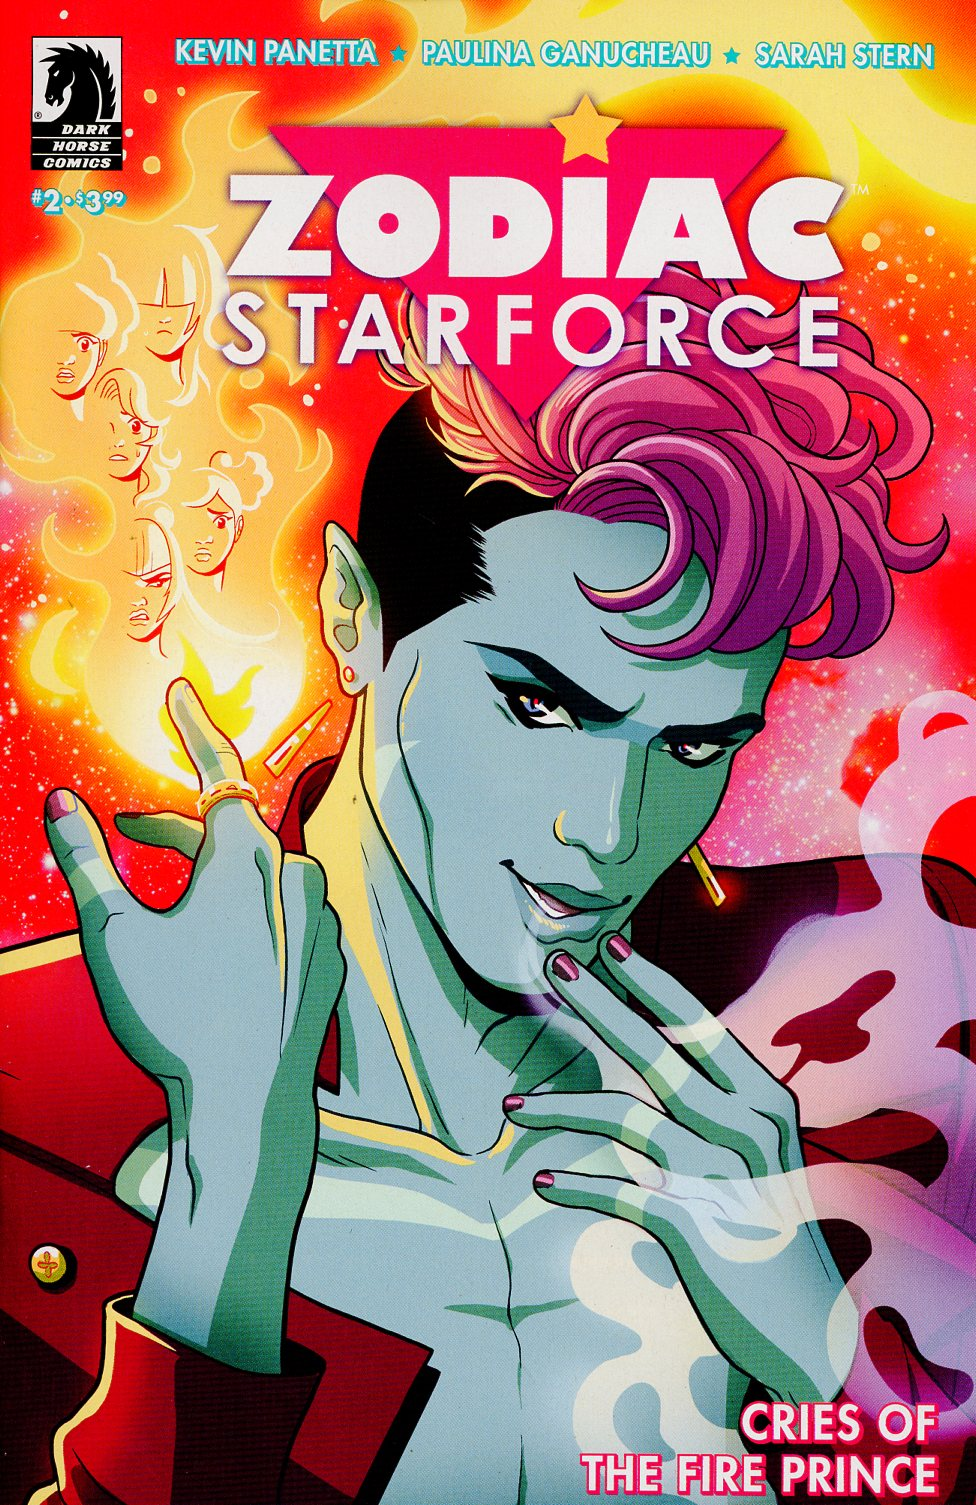 Zodiac Starforce Cries Of The Fire Prince #2